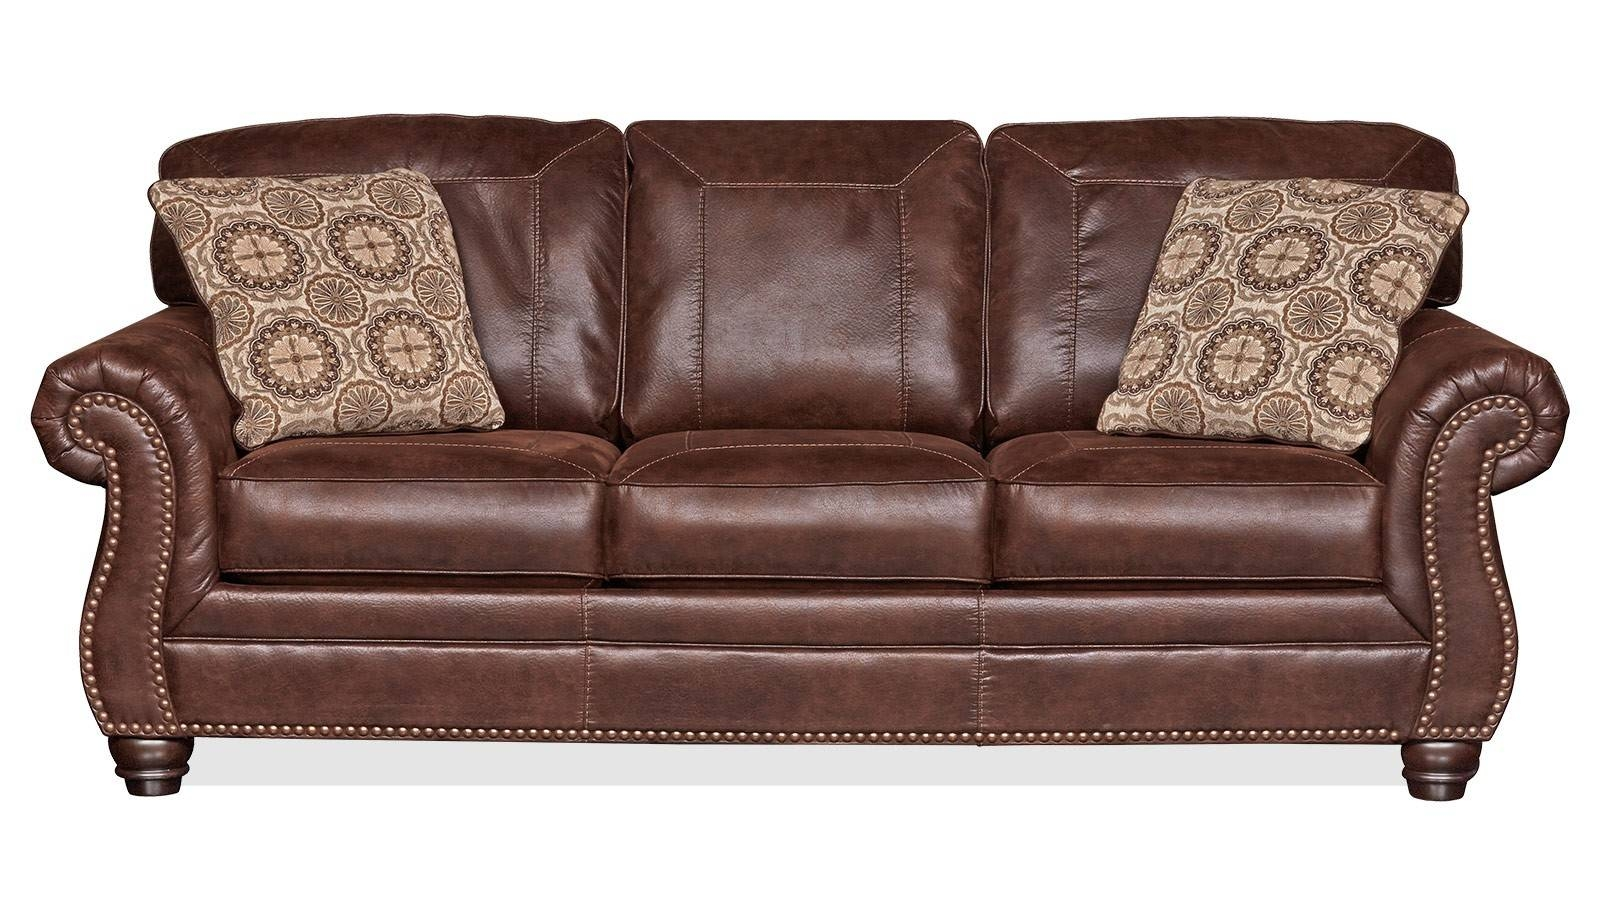 Living Room Sofas | Gallery Furniture within Camel Colored Leather Sofas (Image 10 of 15)